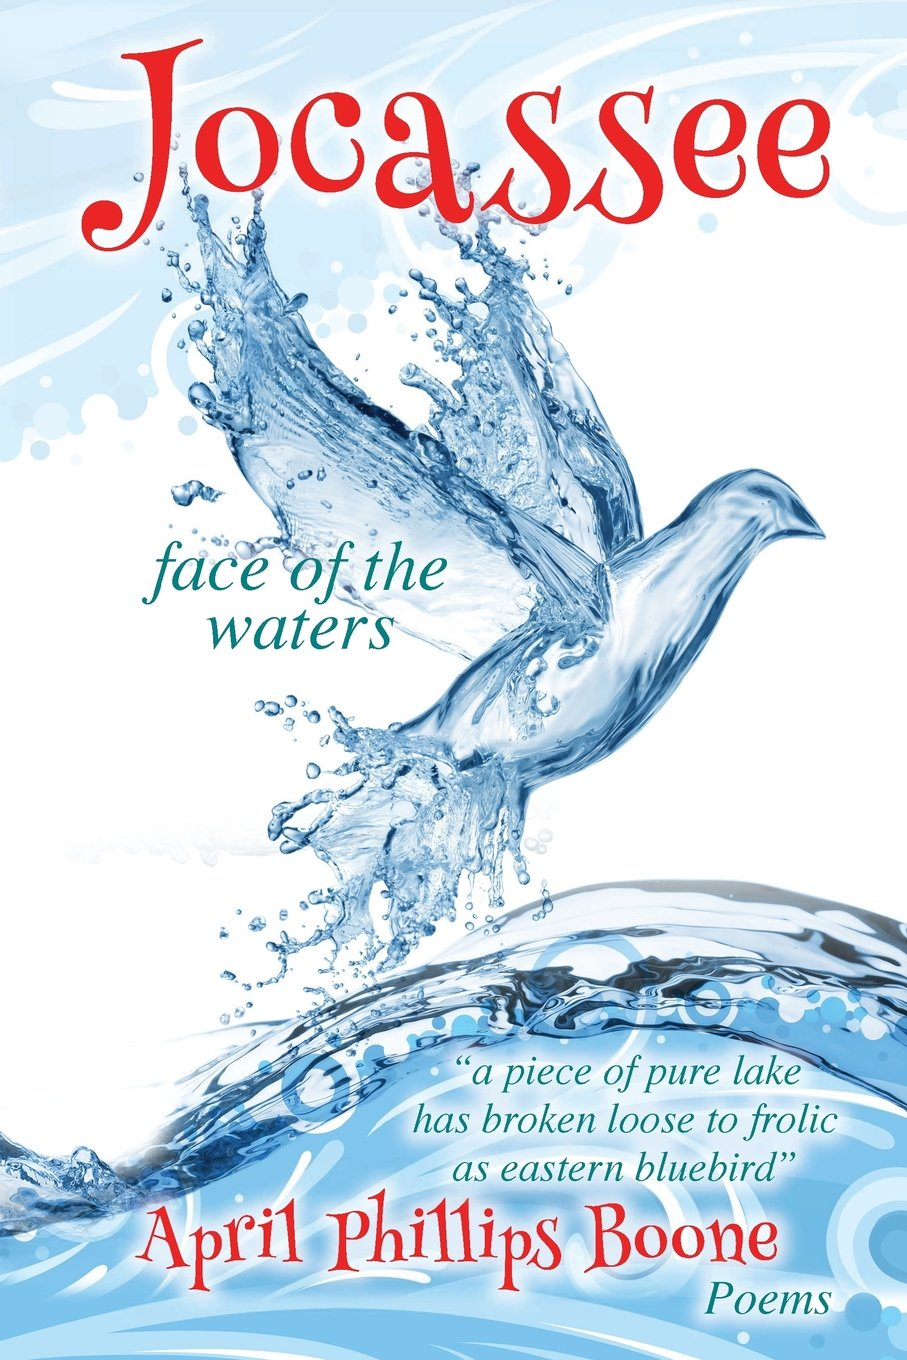 Jocassee: face of the waters